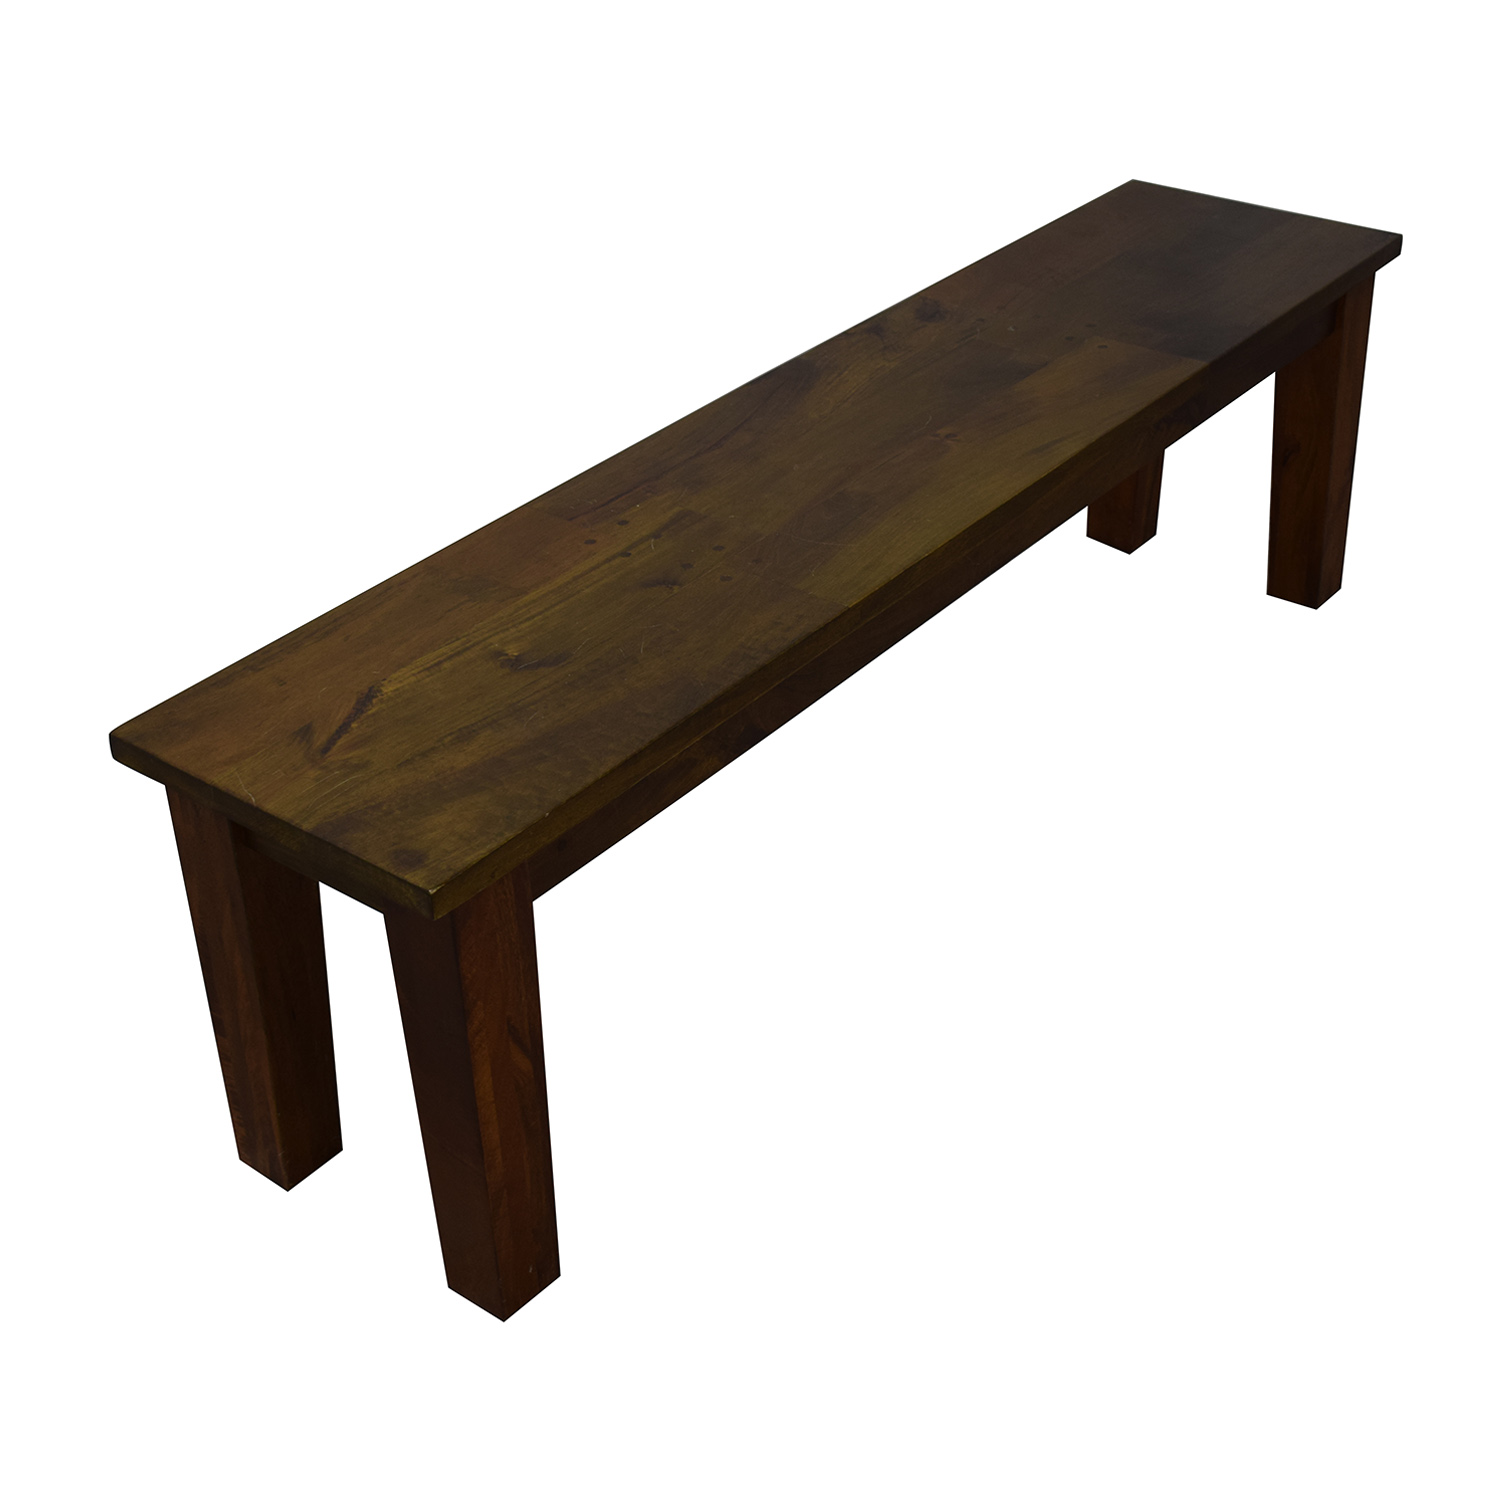 Crate & Barrel Crate & Barrel Wood Table with Two Benches